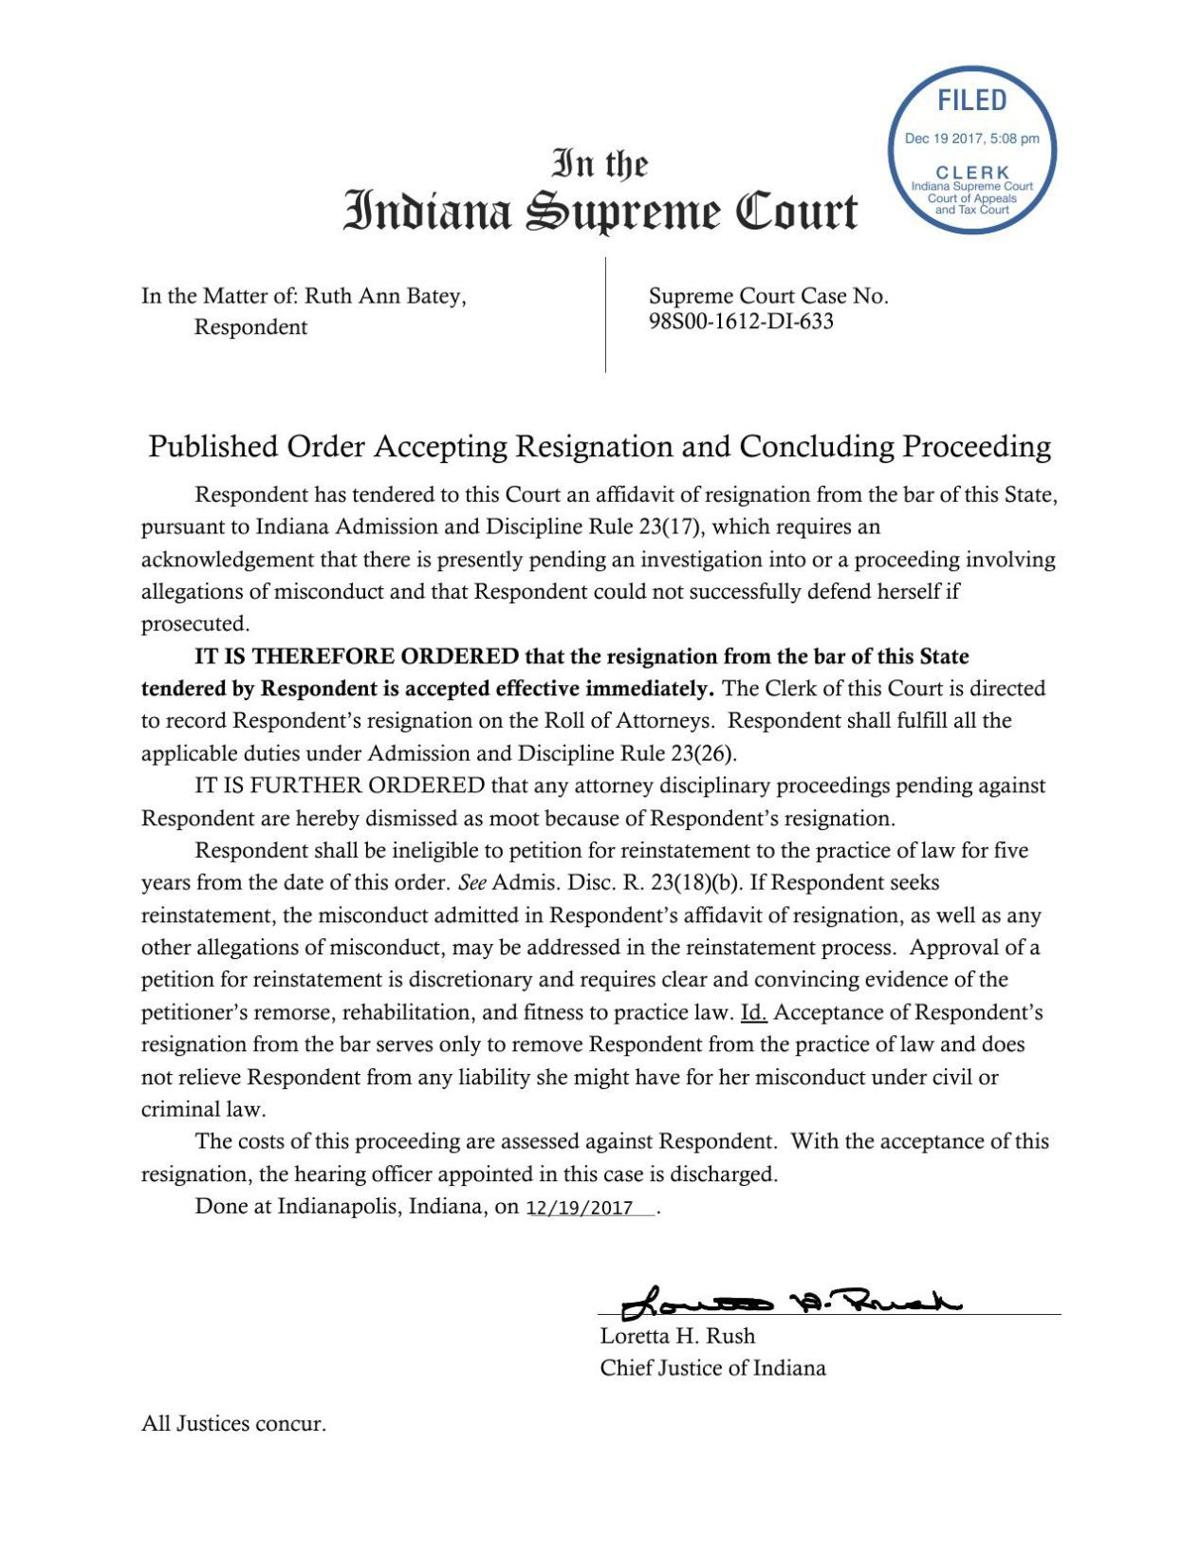 In the matter of Ruth Ann Batey ruling of Indiana Supreme Court